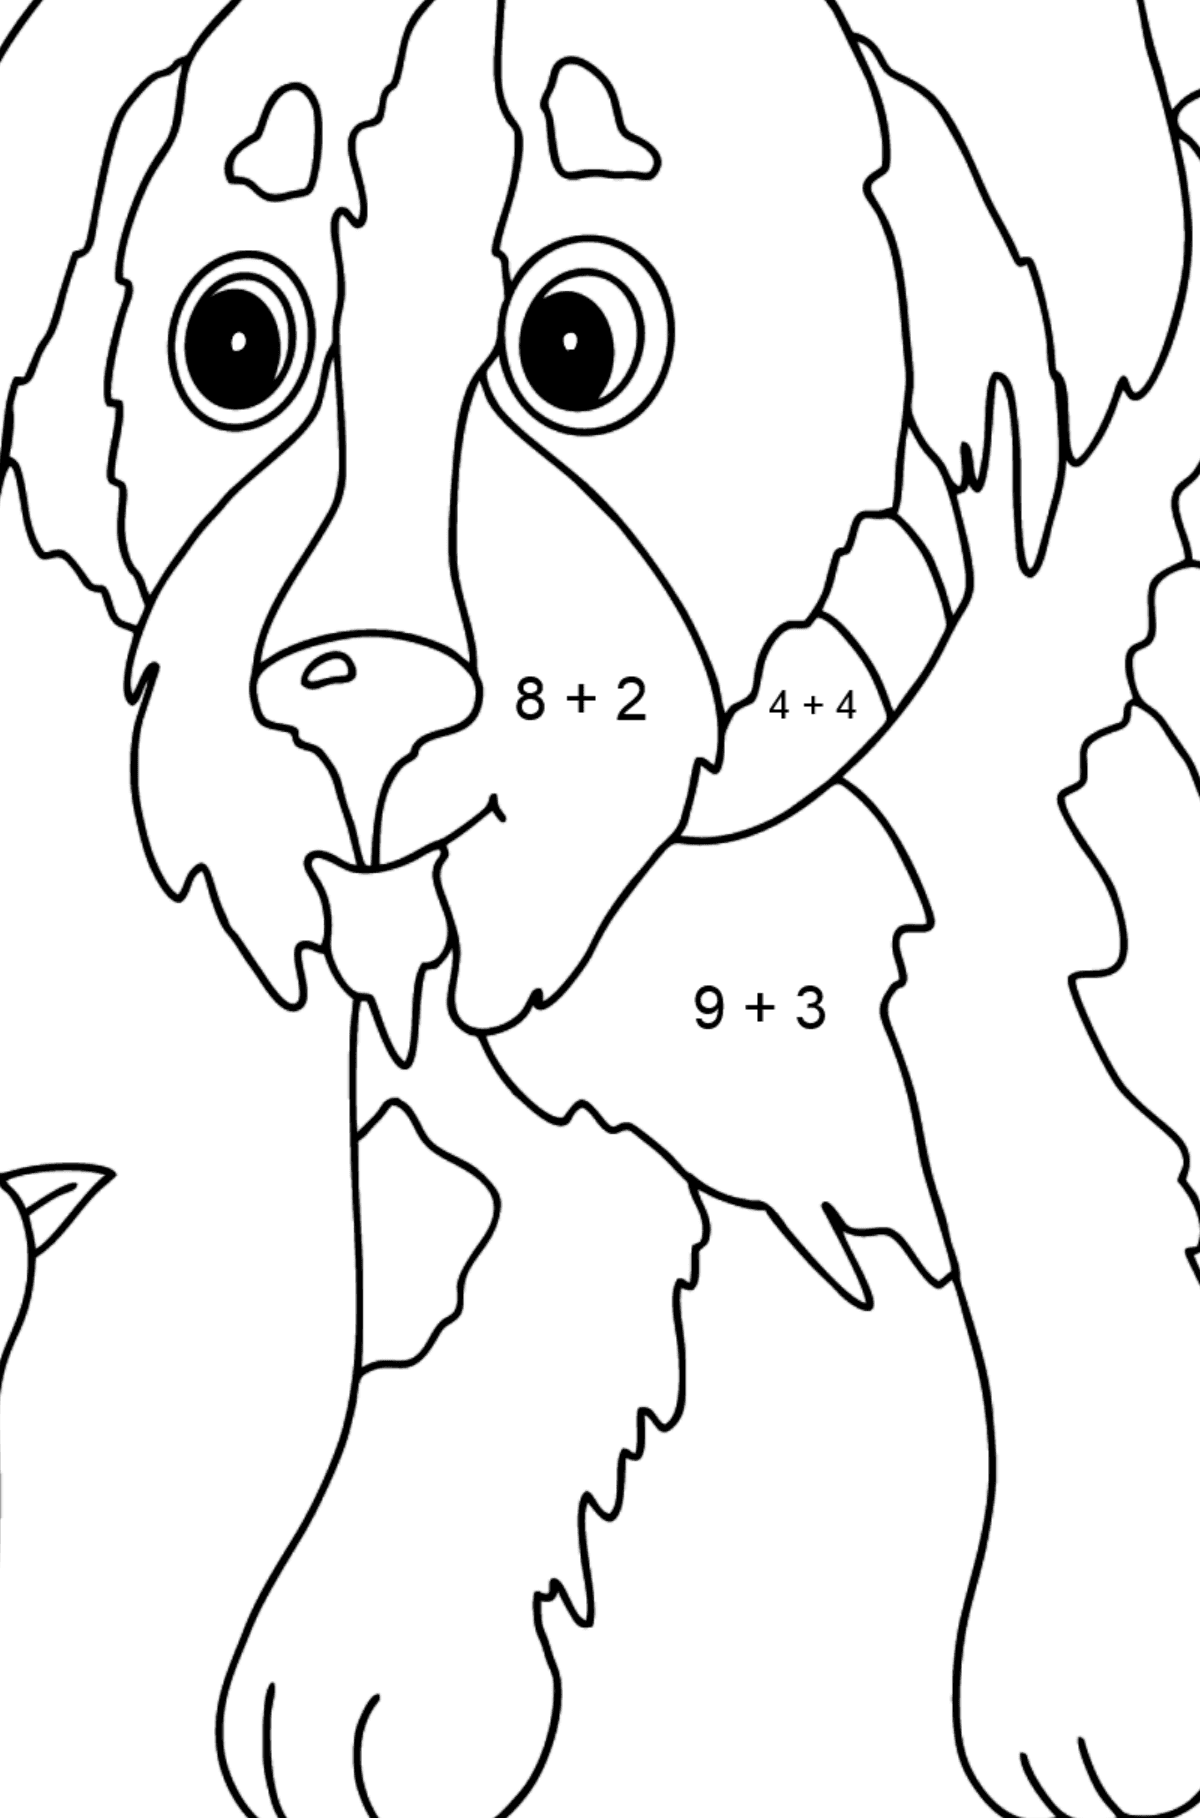 Coloring Page - A Dog is Talking to a Bird - Math Coloring - Addition for Kids